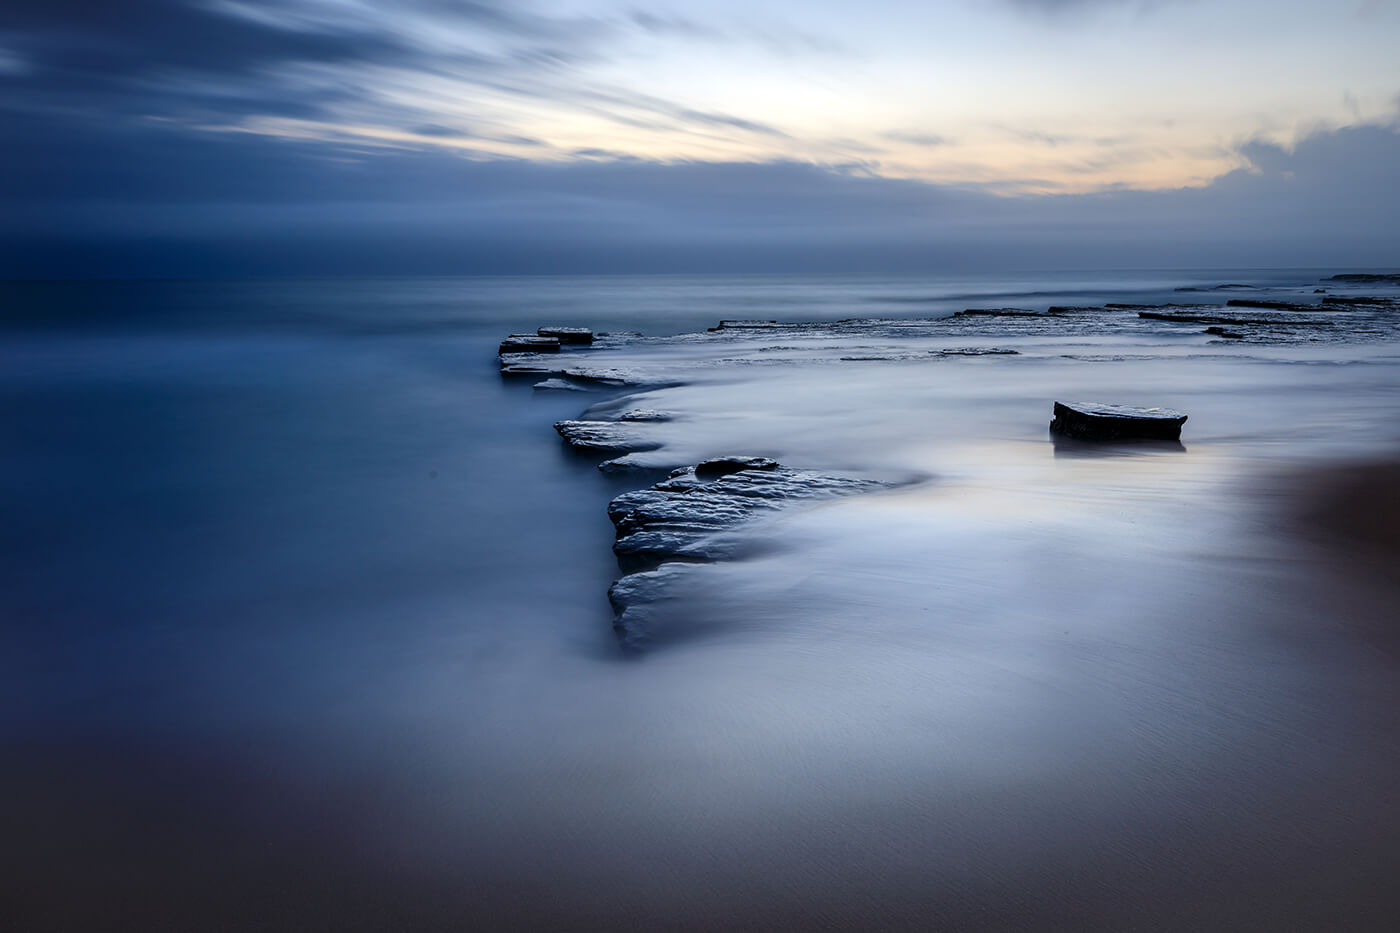 Slow shutter image water on rocks by photographer Mike Pearson-Coff